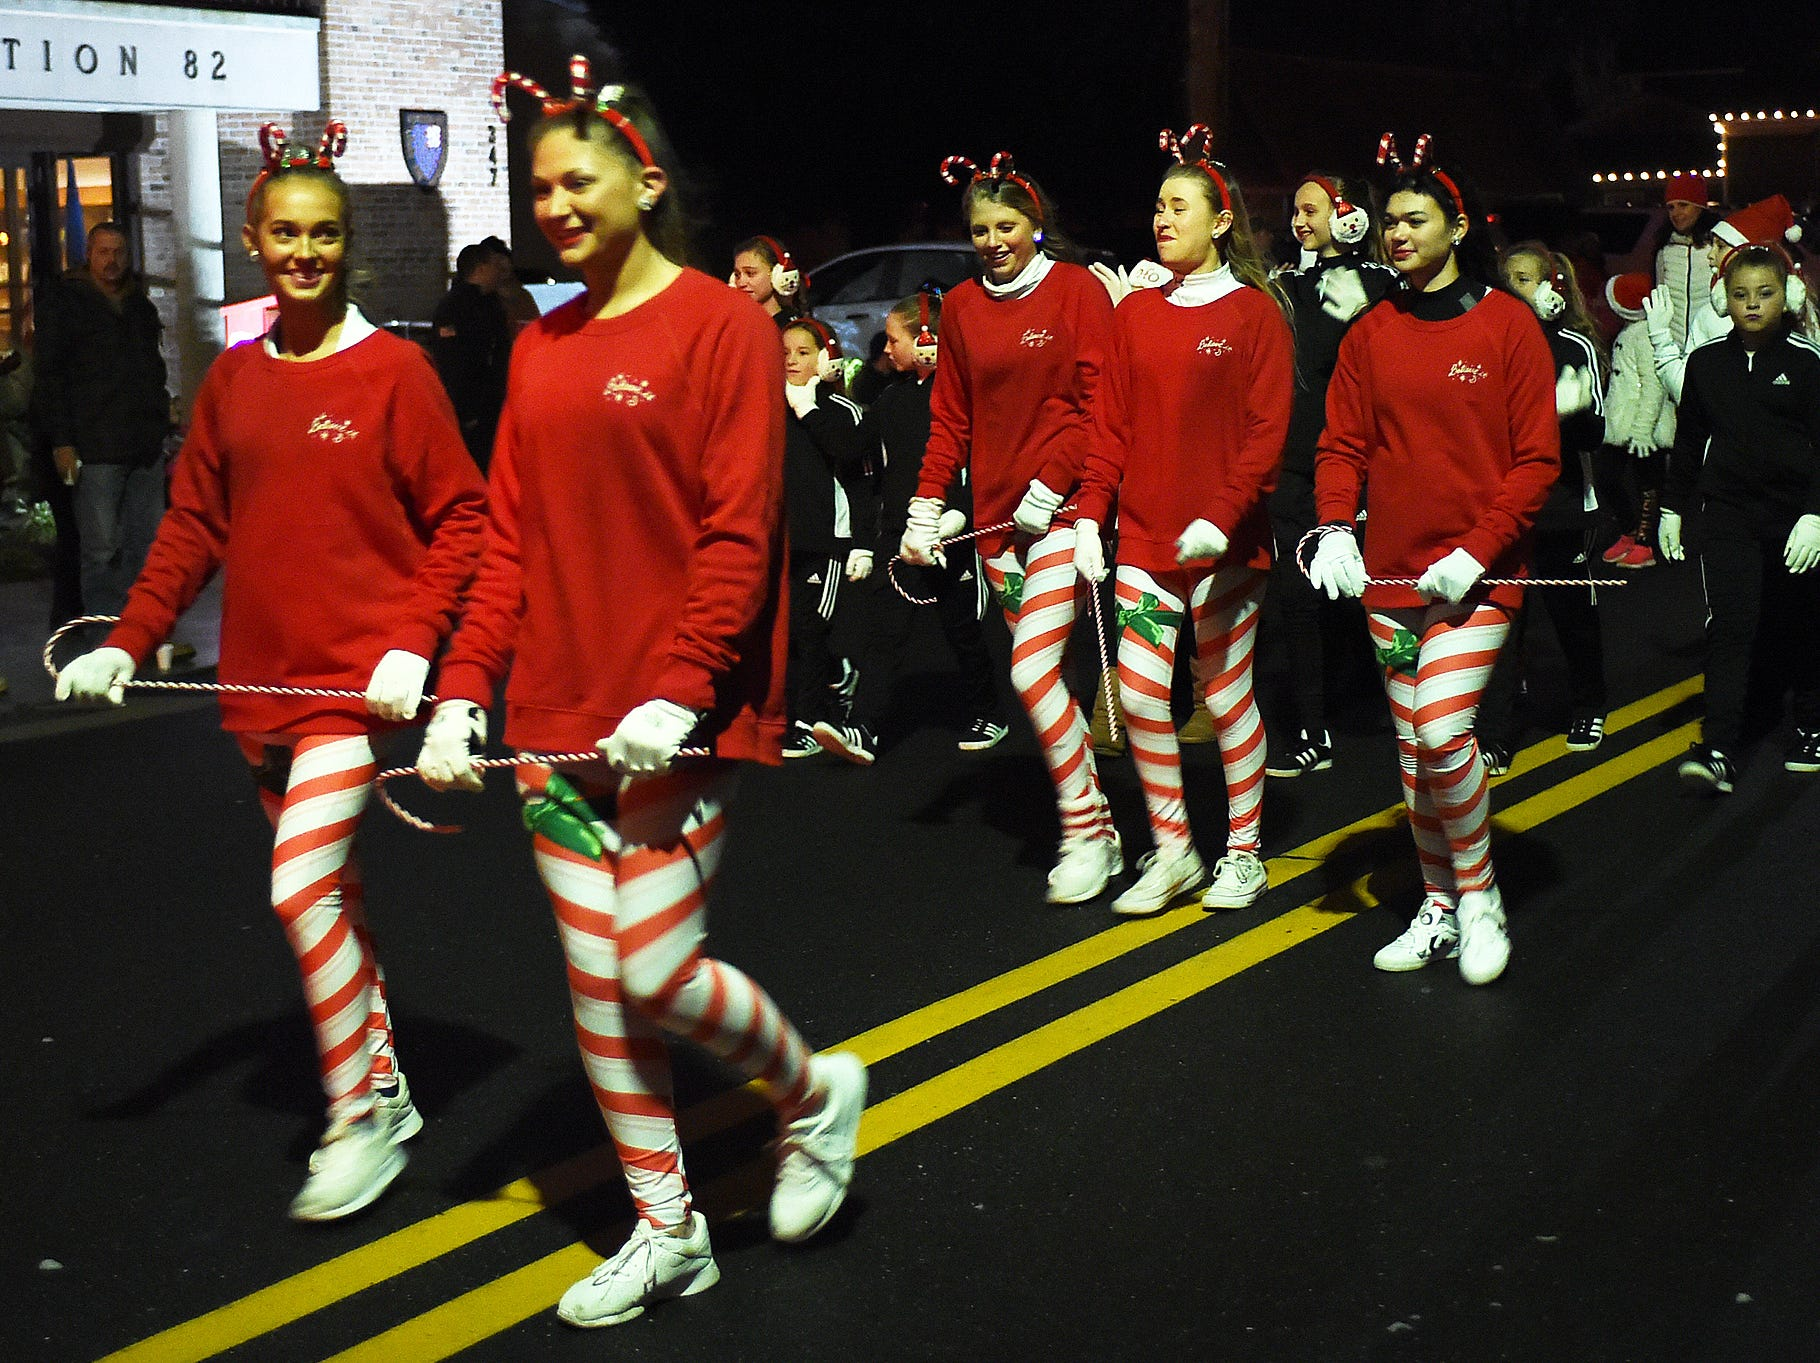 The Annual Lewes Christmas Parade was held on Saturday December 1 in downtown Lewes with hundreds on hand to view the start of the Holiday Season in Lewes, Delaware. Special to the Daily Times / Chuck Snyder